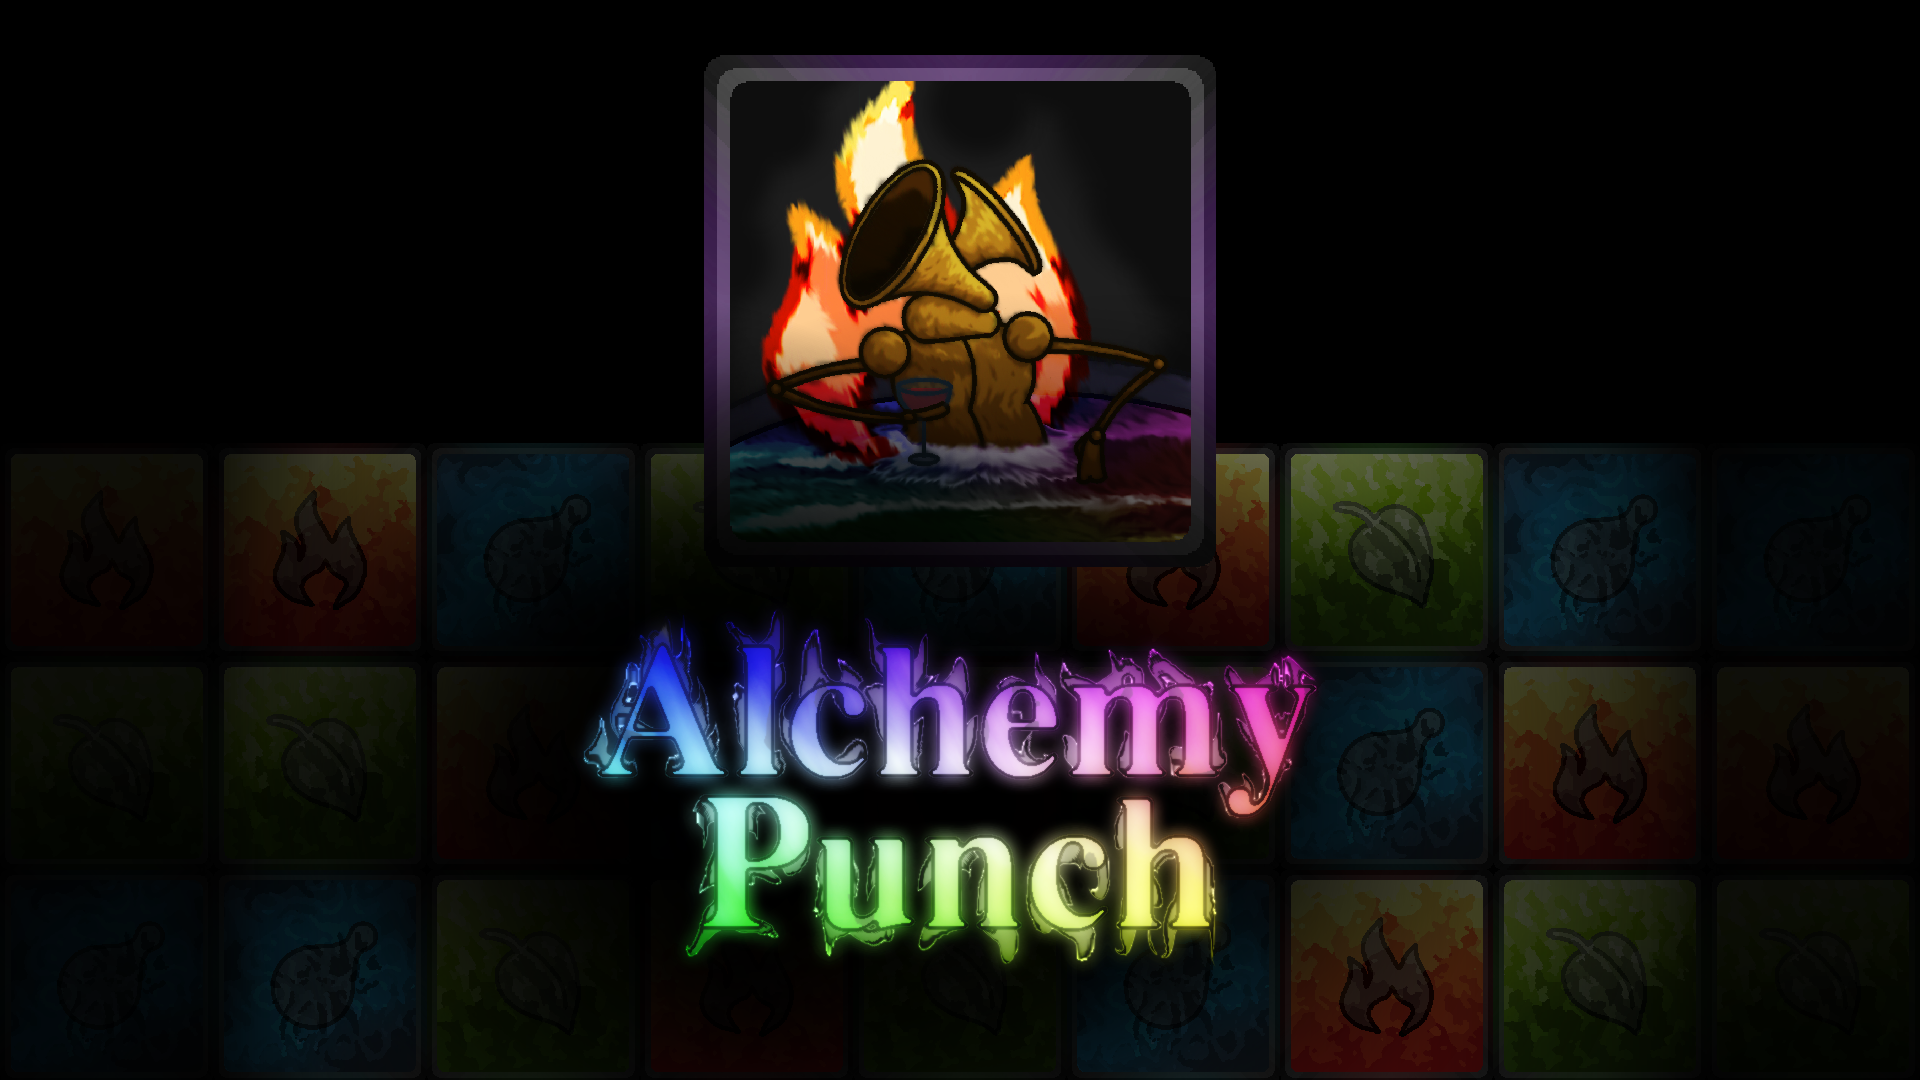 Alchemy Punch